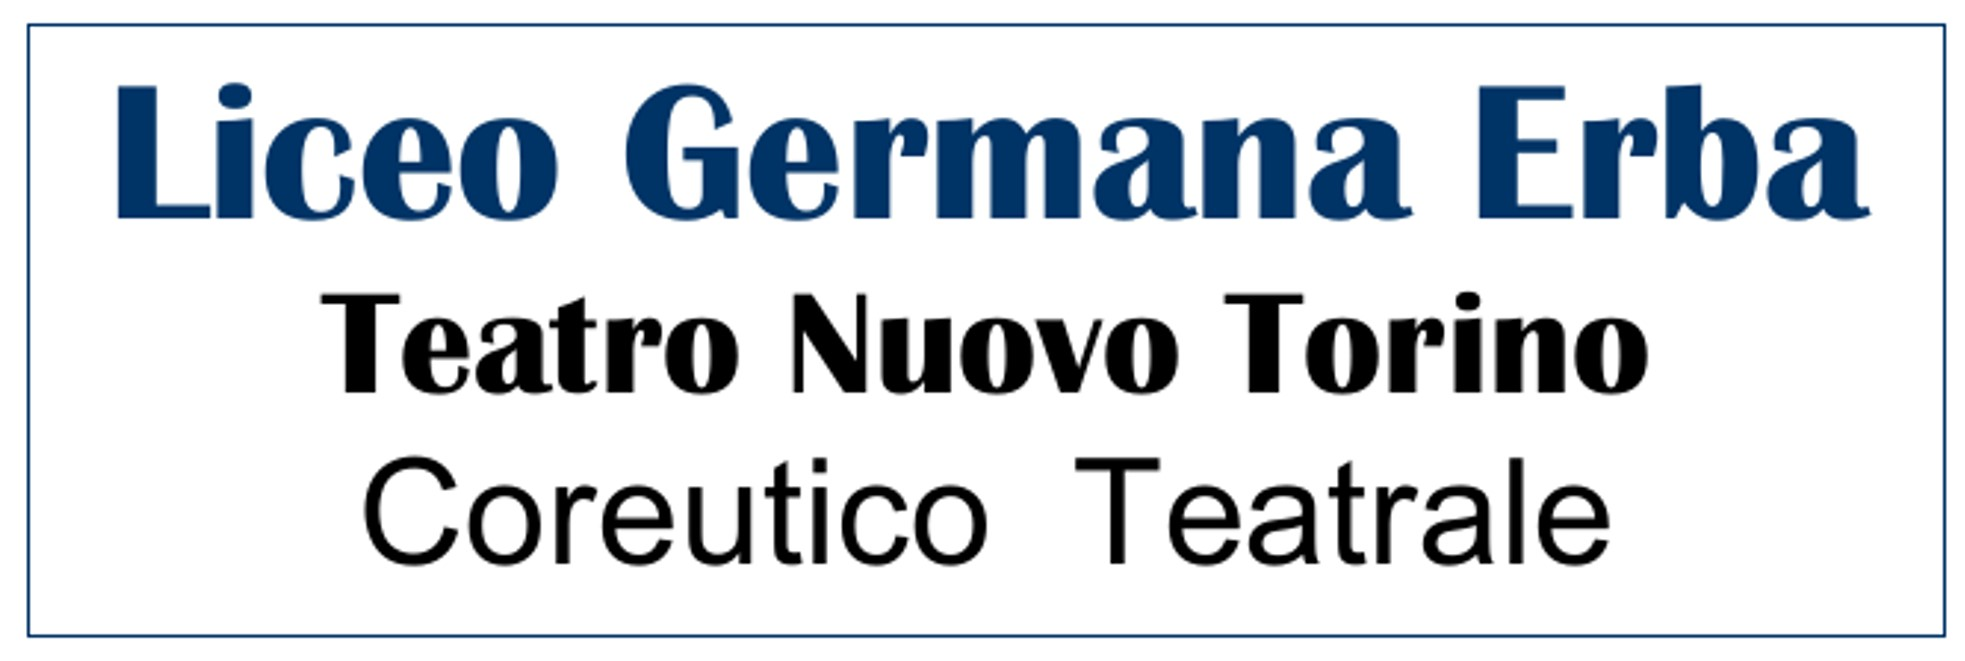 Liceo Germana Erba